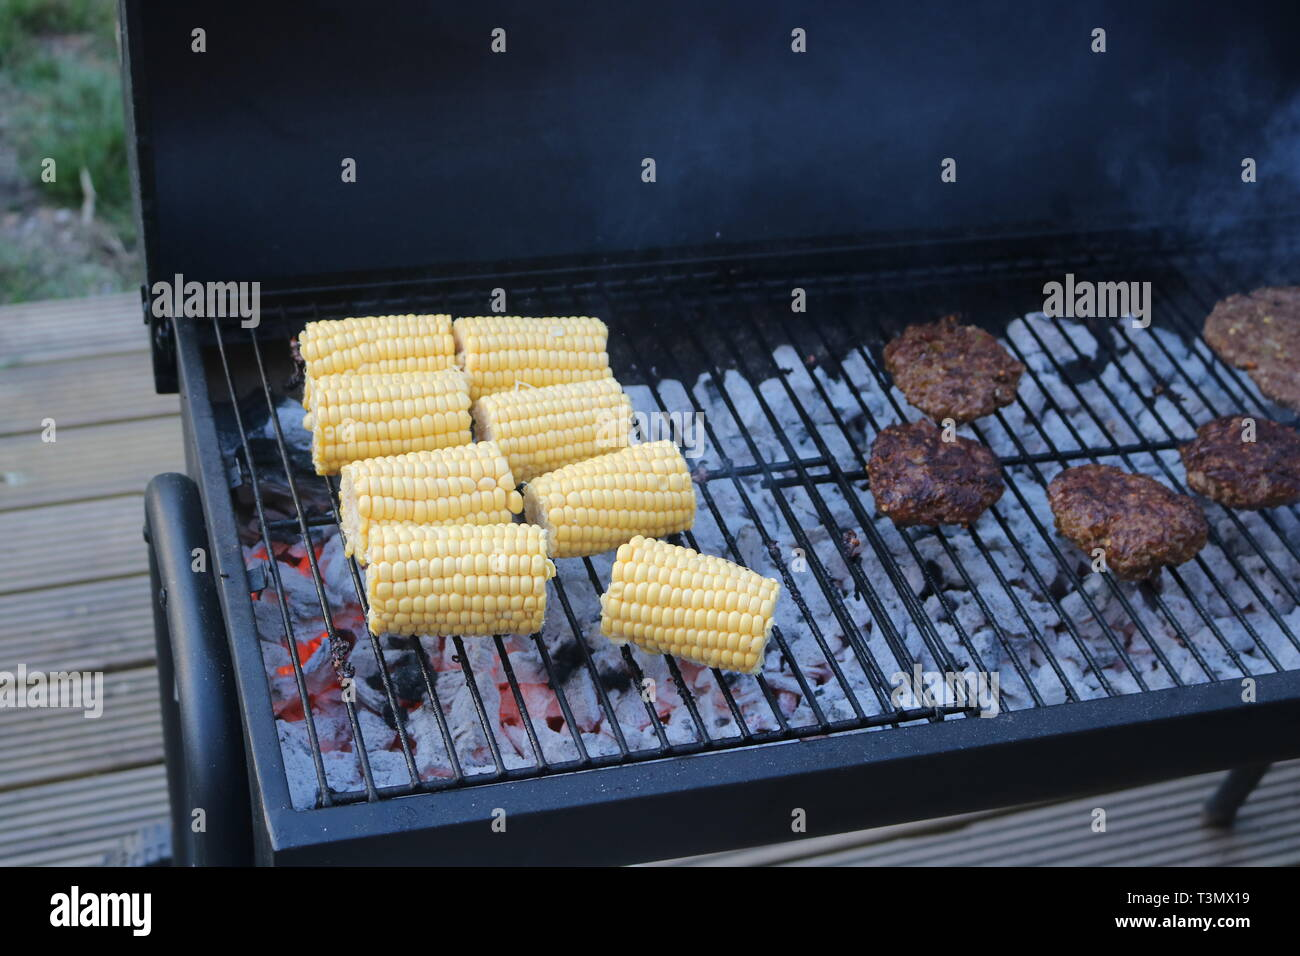 corn on the cob and kebabs on barbecue grill Stock Photo